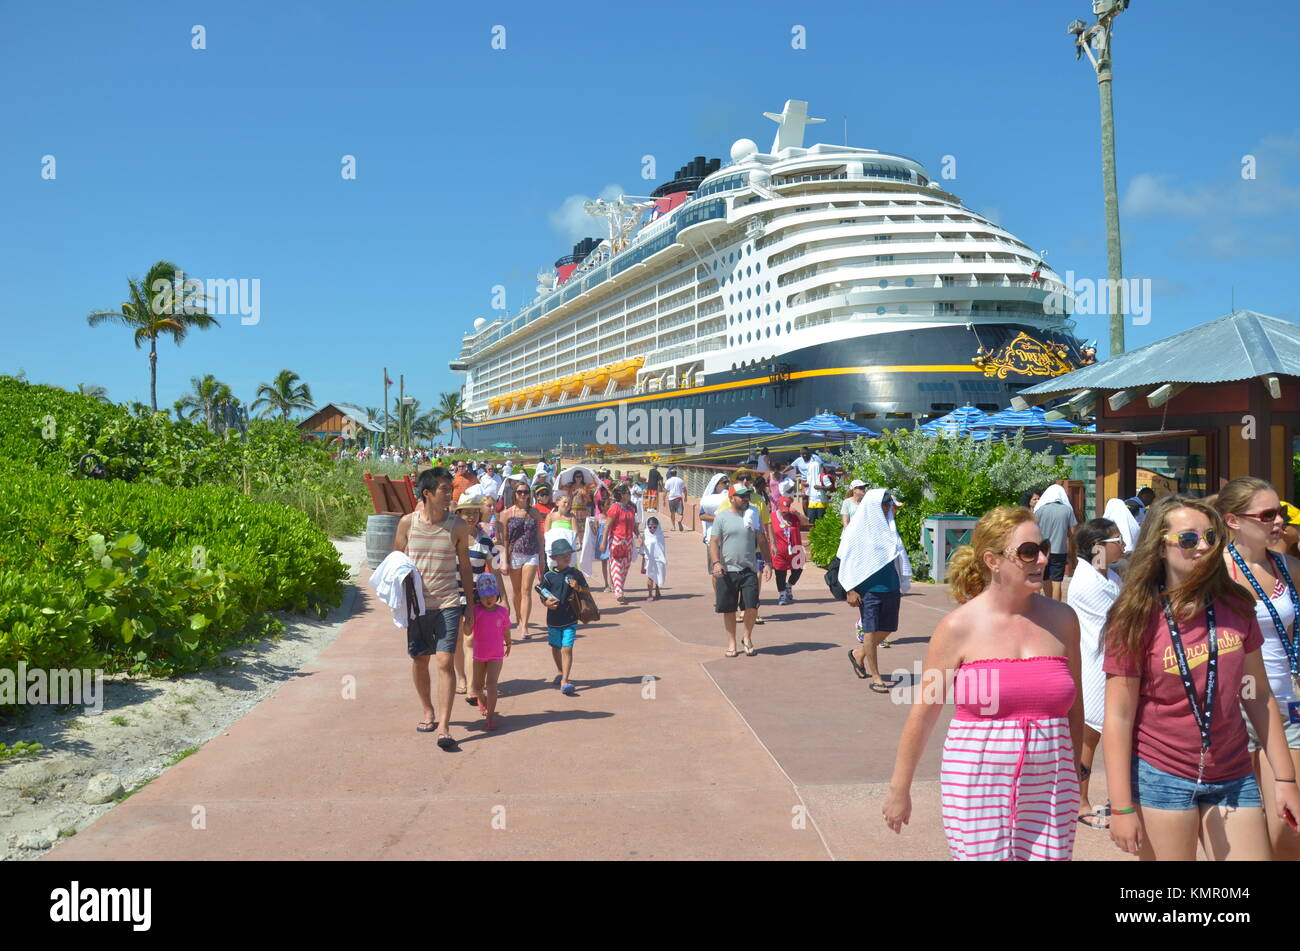 Disney S Castaway Cay Private Island In The Bahamas Stock Photo Alamy